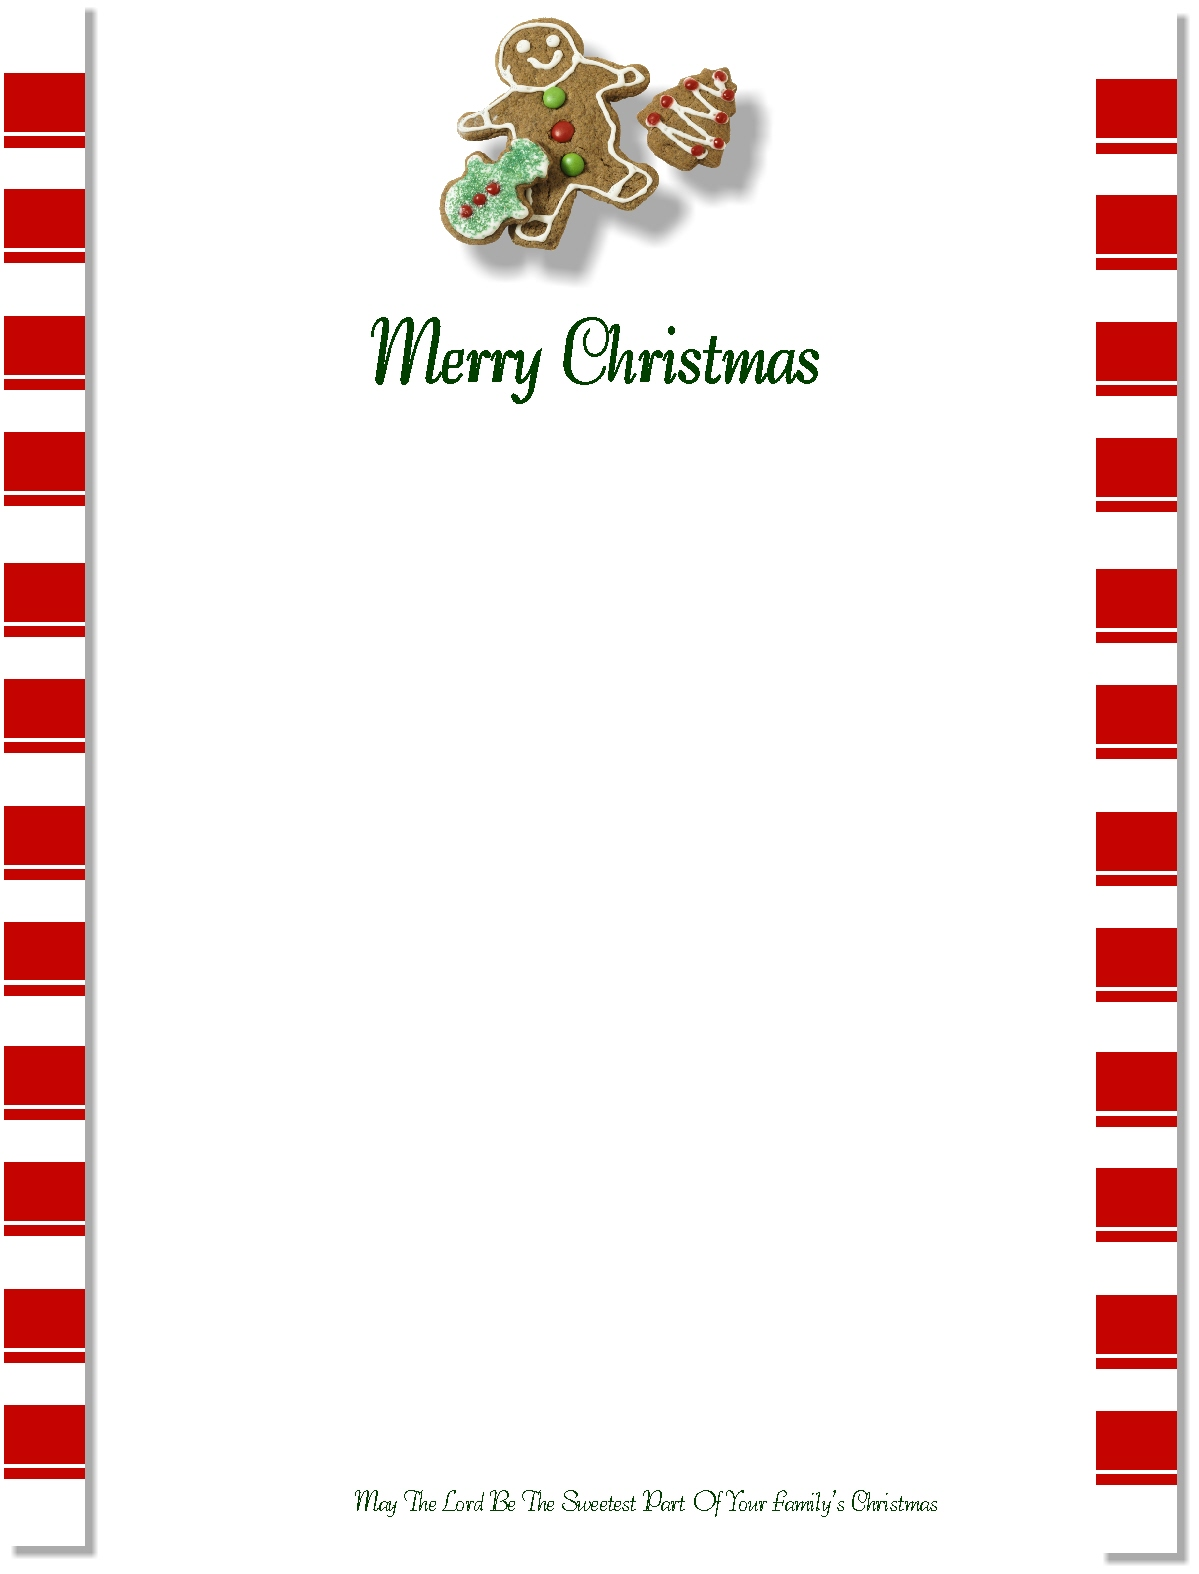 Christian Images In My Treasure Box: Christmas Letterheads ...